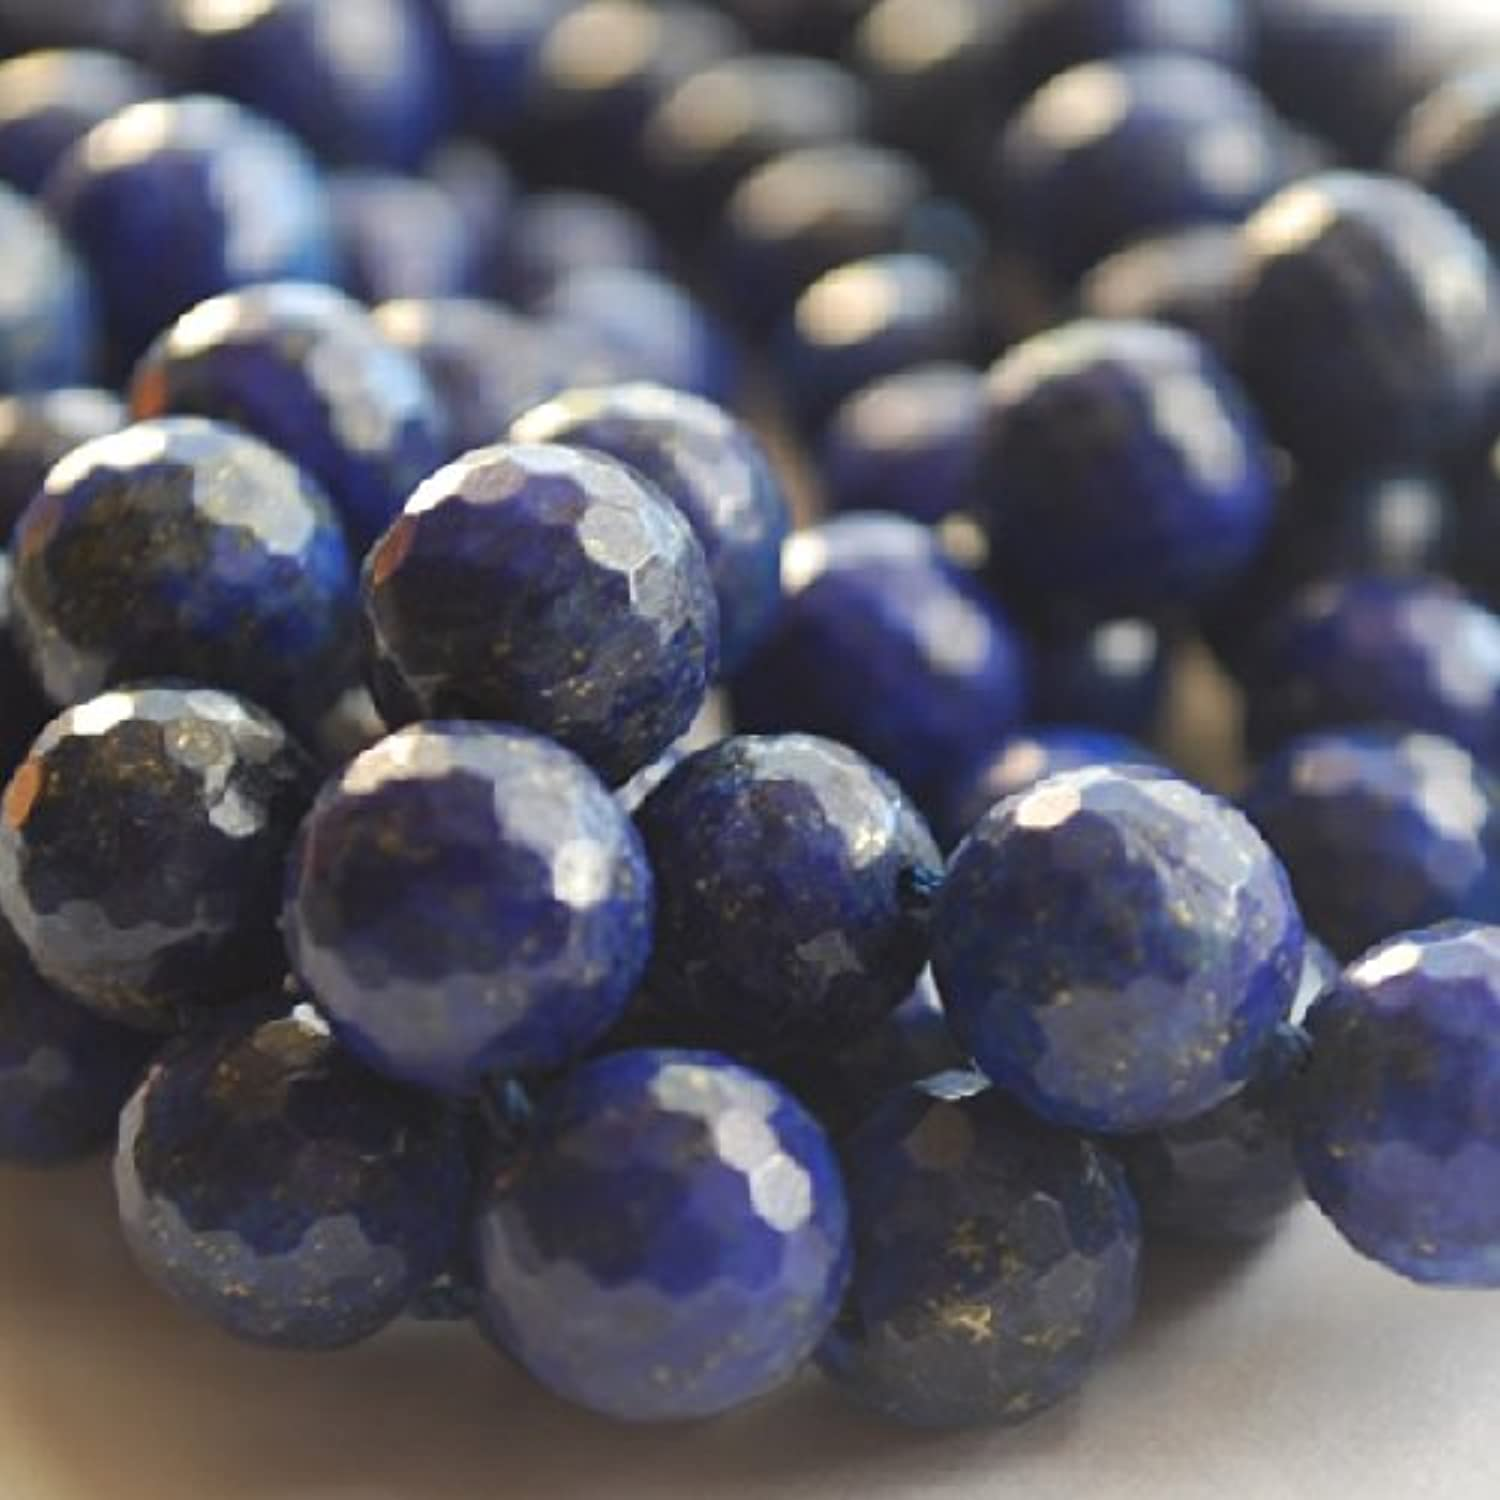 High Quality Grade A A A Natural Lapis LBlaui Faceted Semi-precious Gemstone Round Beads - 15  strand - 8mm (46 - 50 beads) B00KS9YL0S |  